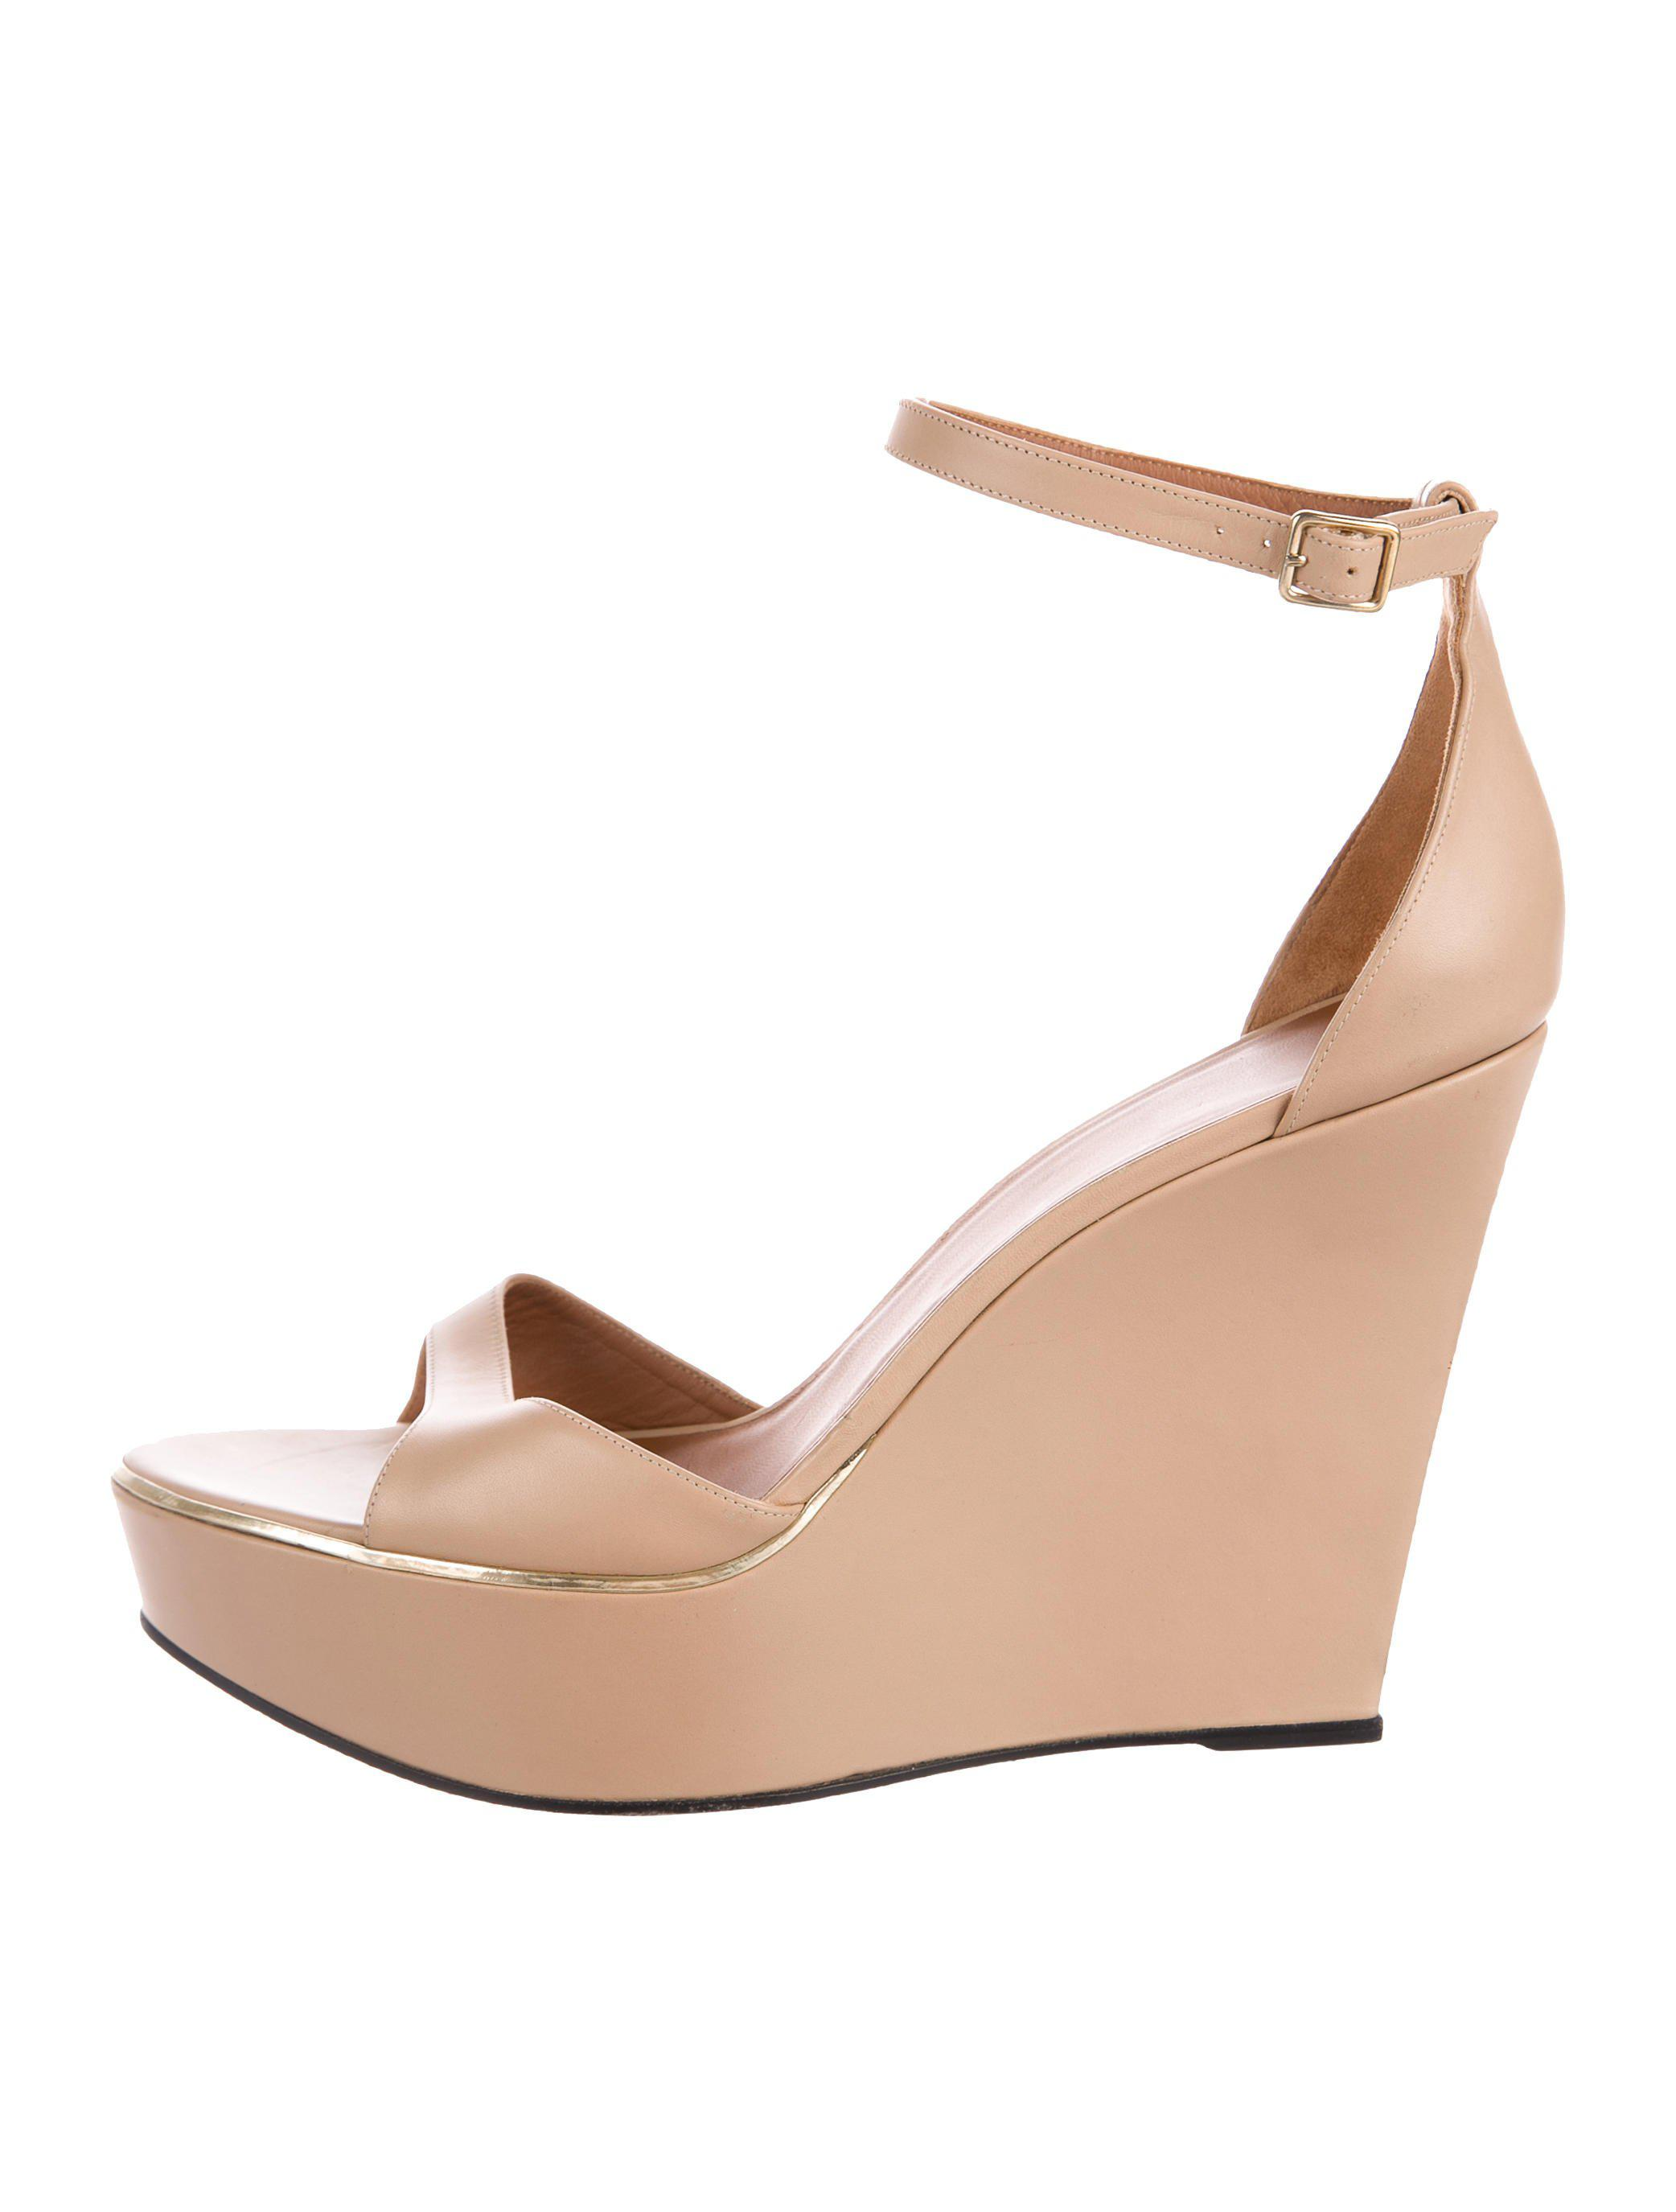 Givenchy Leather Platform Wedges 2014 unisex cheap high quality real enjoy sale online discount low price KS7uoBqO